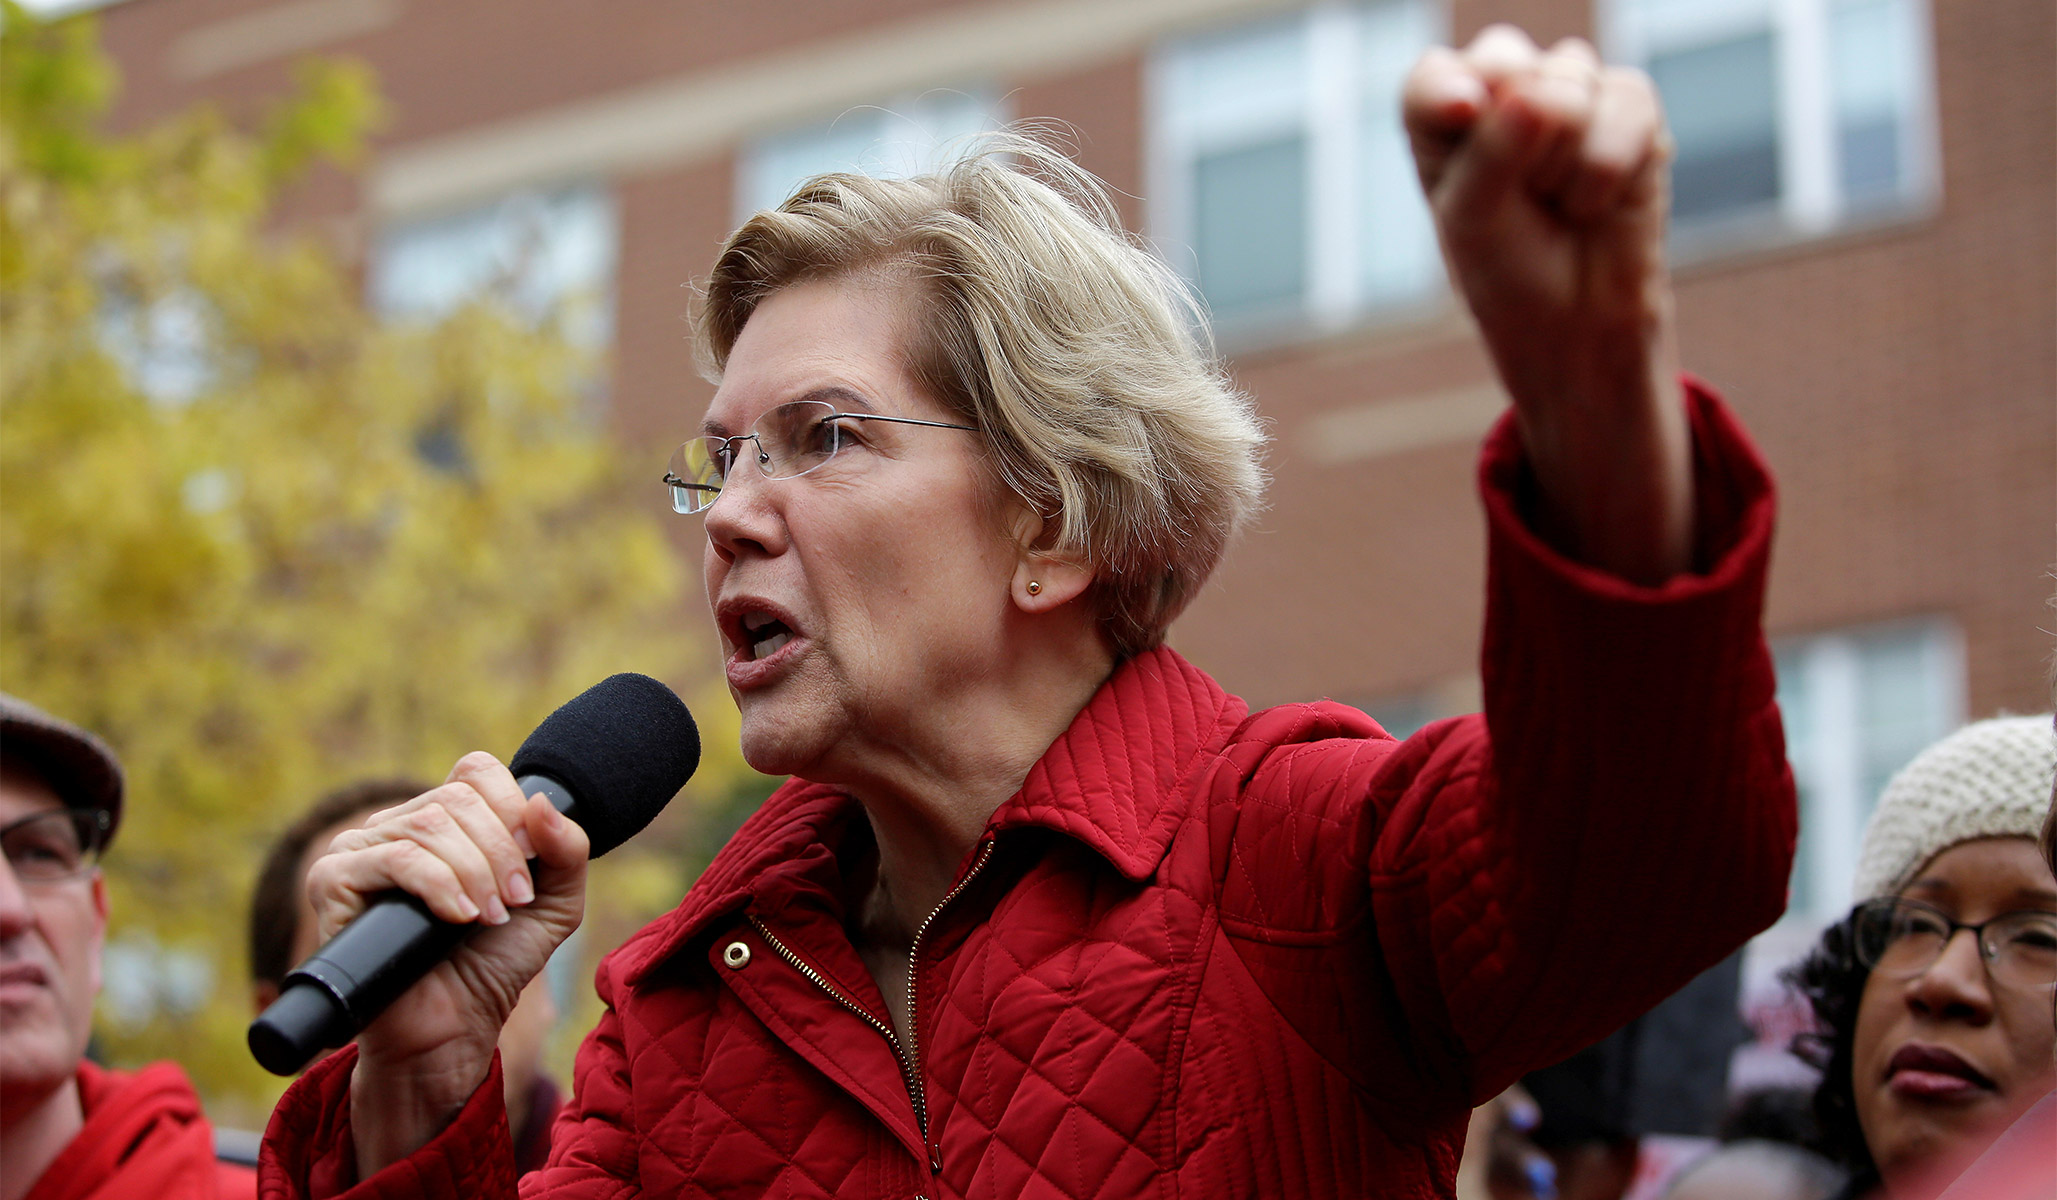 Warren Compounds Her M4A Mistakes